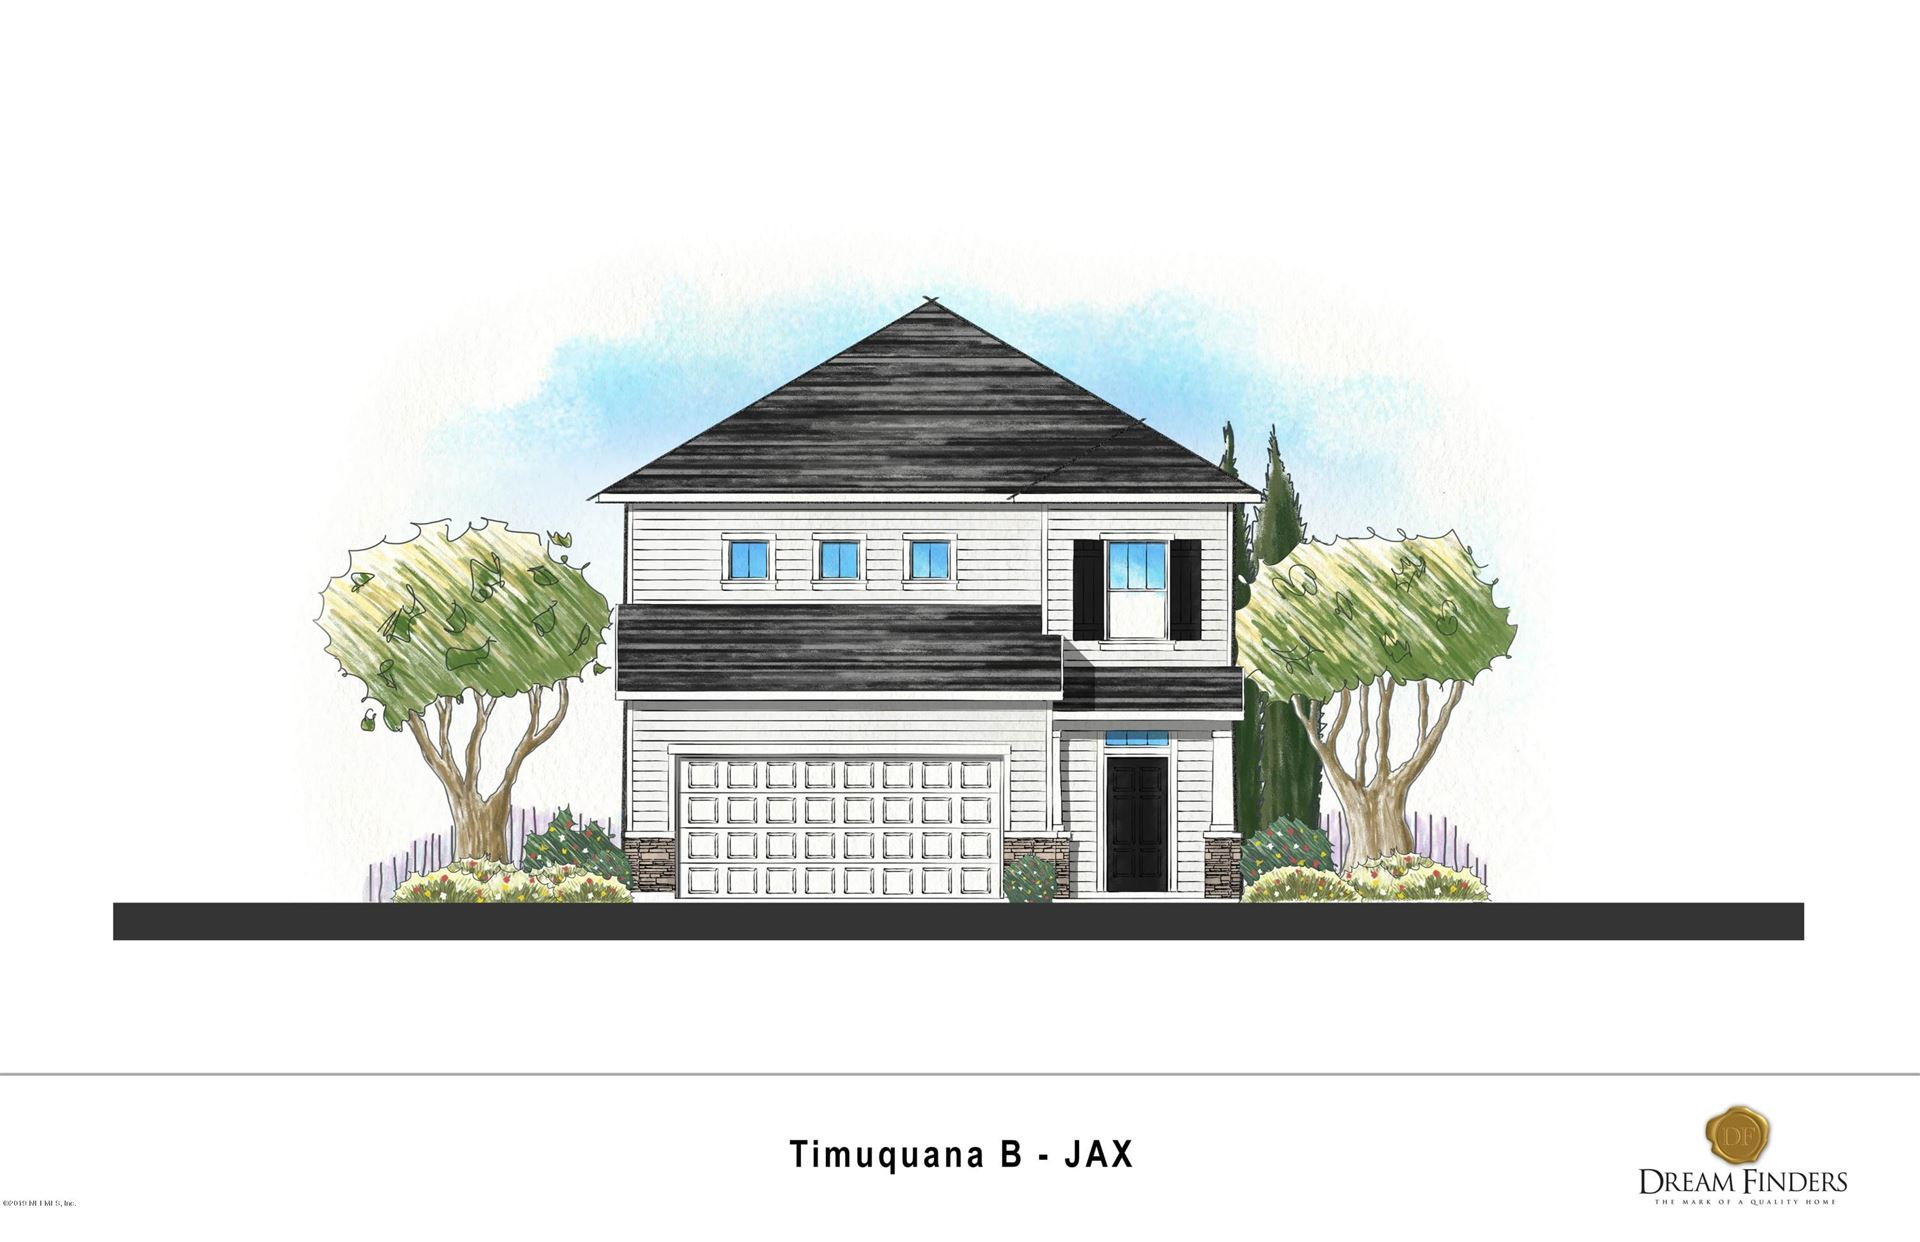 255 HOLLY FOREST DR #Lot No: 3-111, ST AUGUSTINE, FL 32092 - MLS#: 1061759